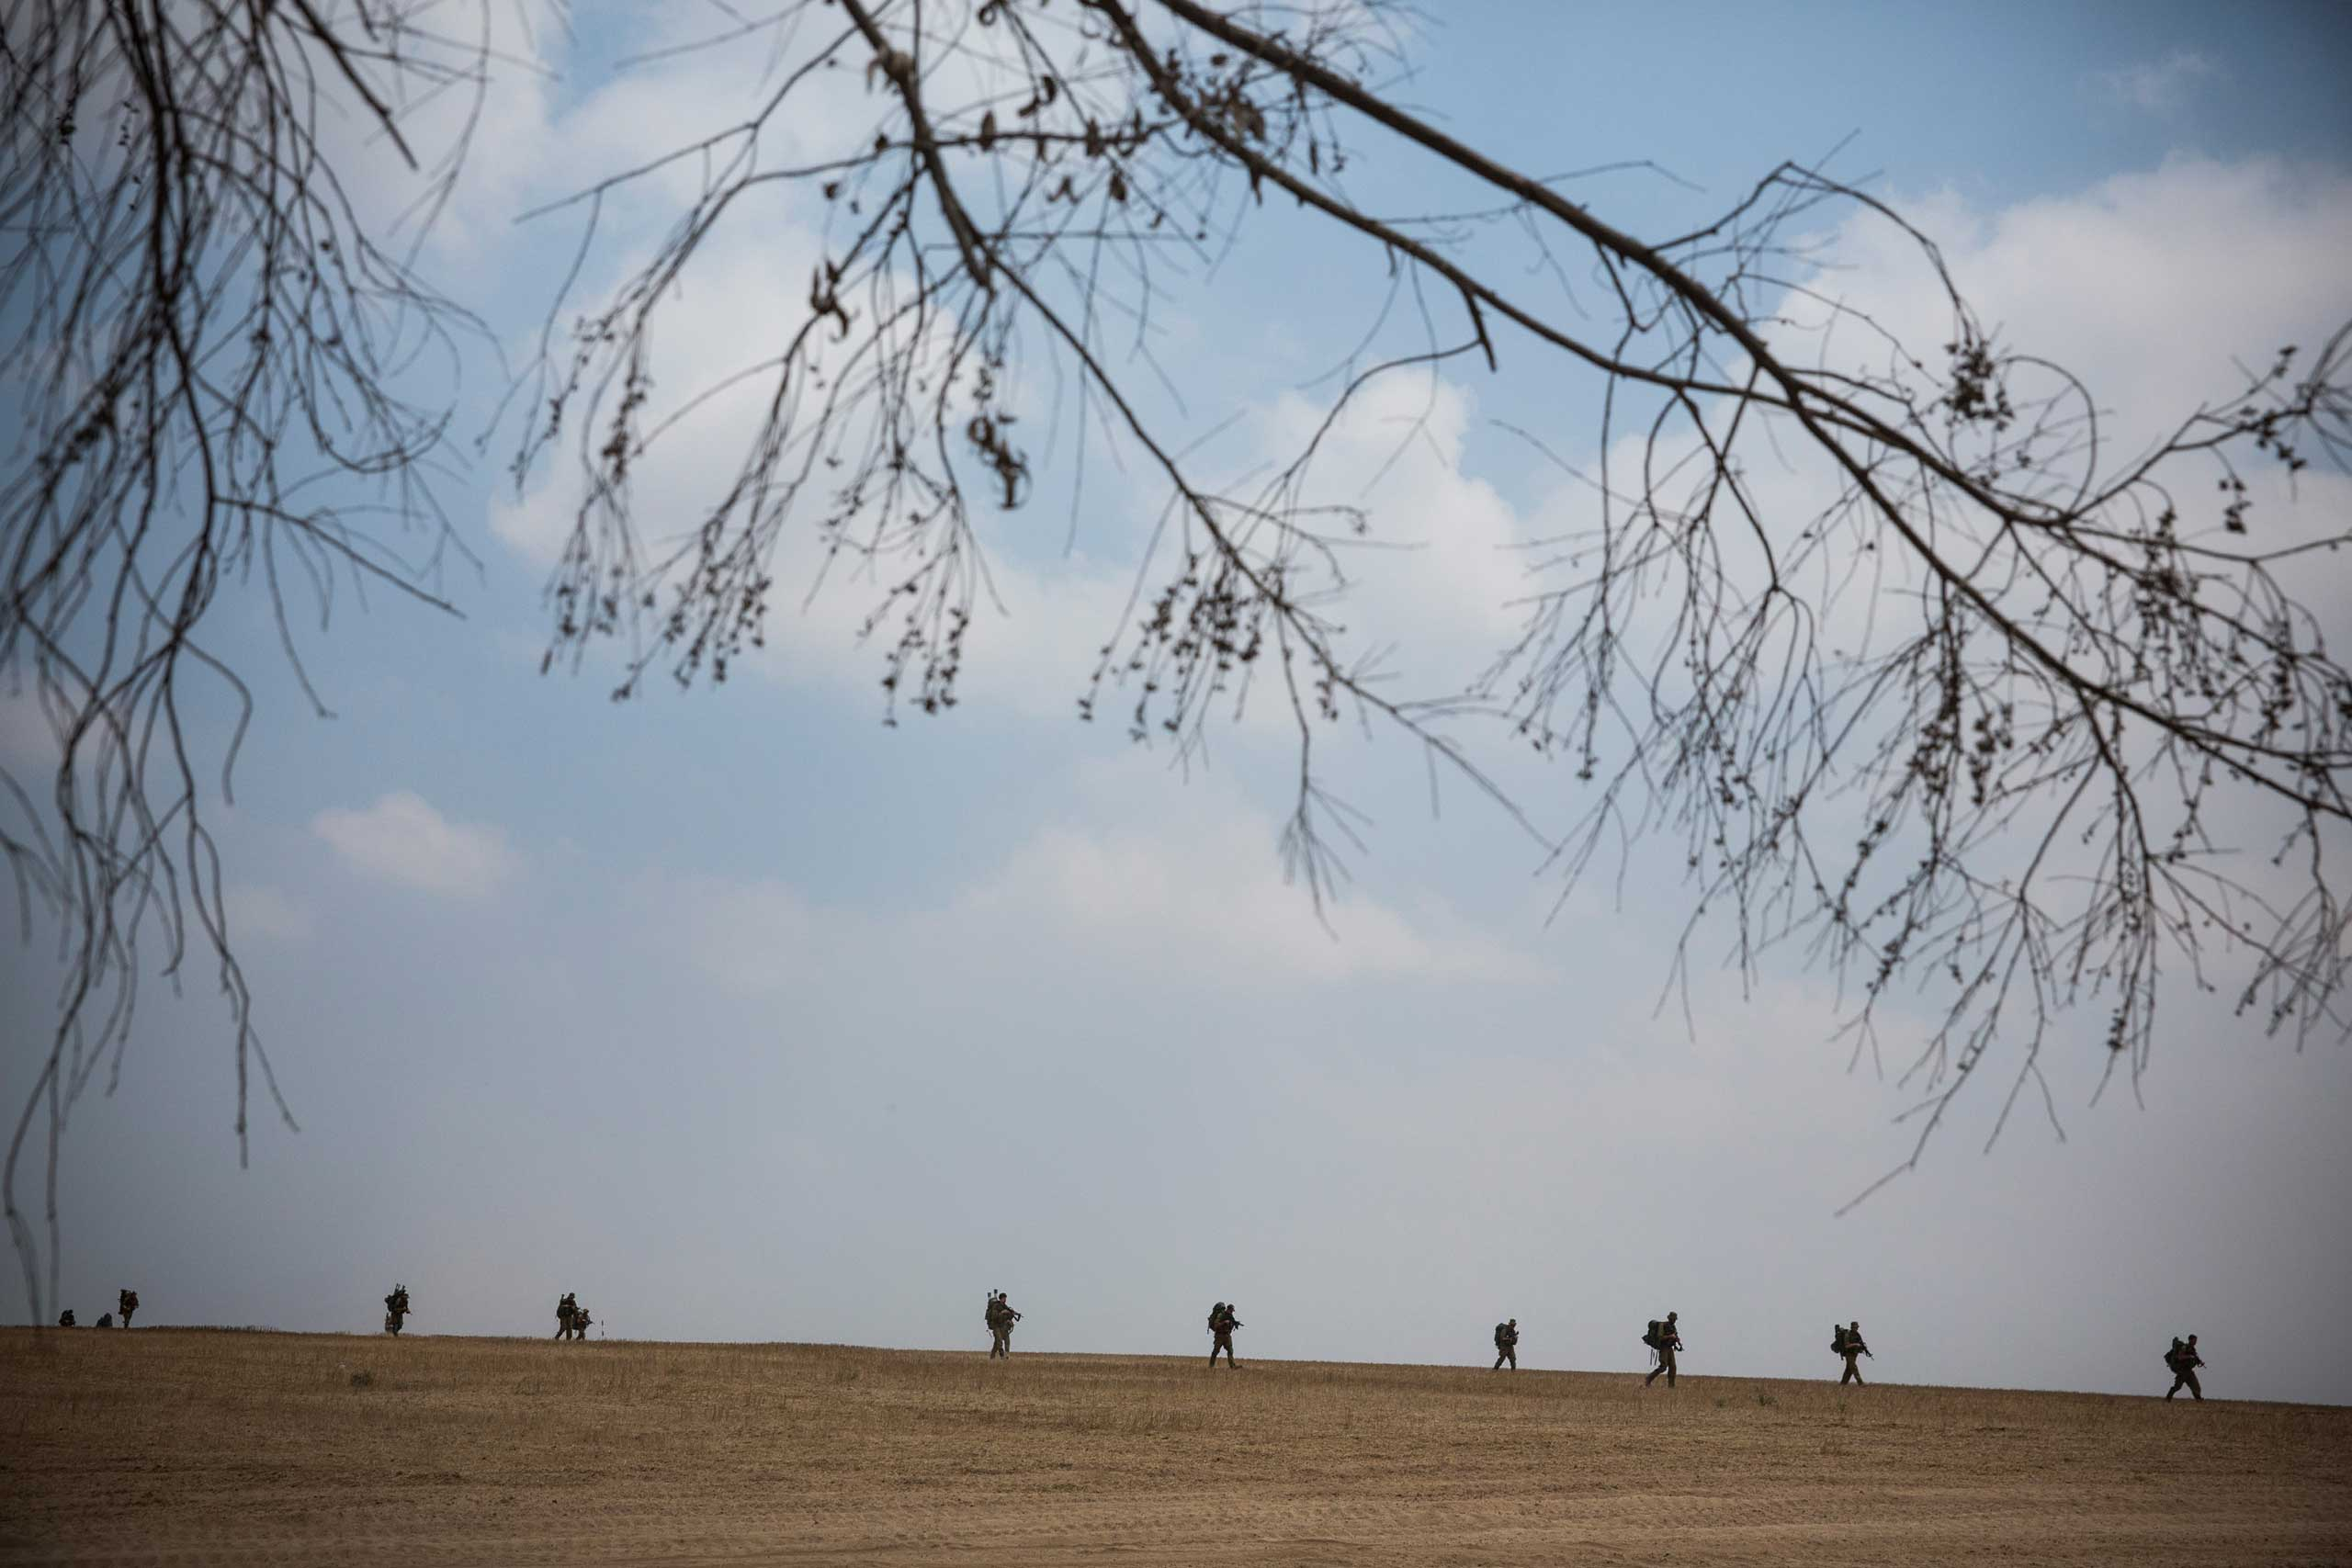 Israeli soldiers practice training missions close to the Israel-Gaza border as seen from near Sderot, Israel, July 22, 2014.